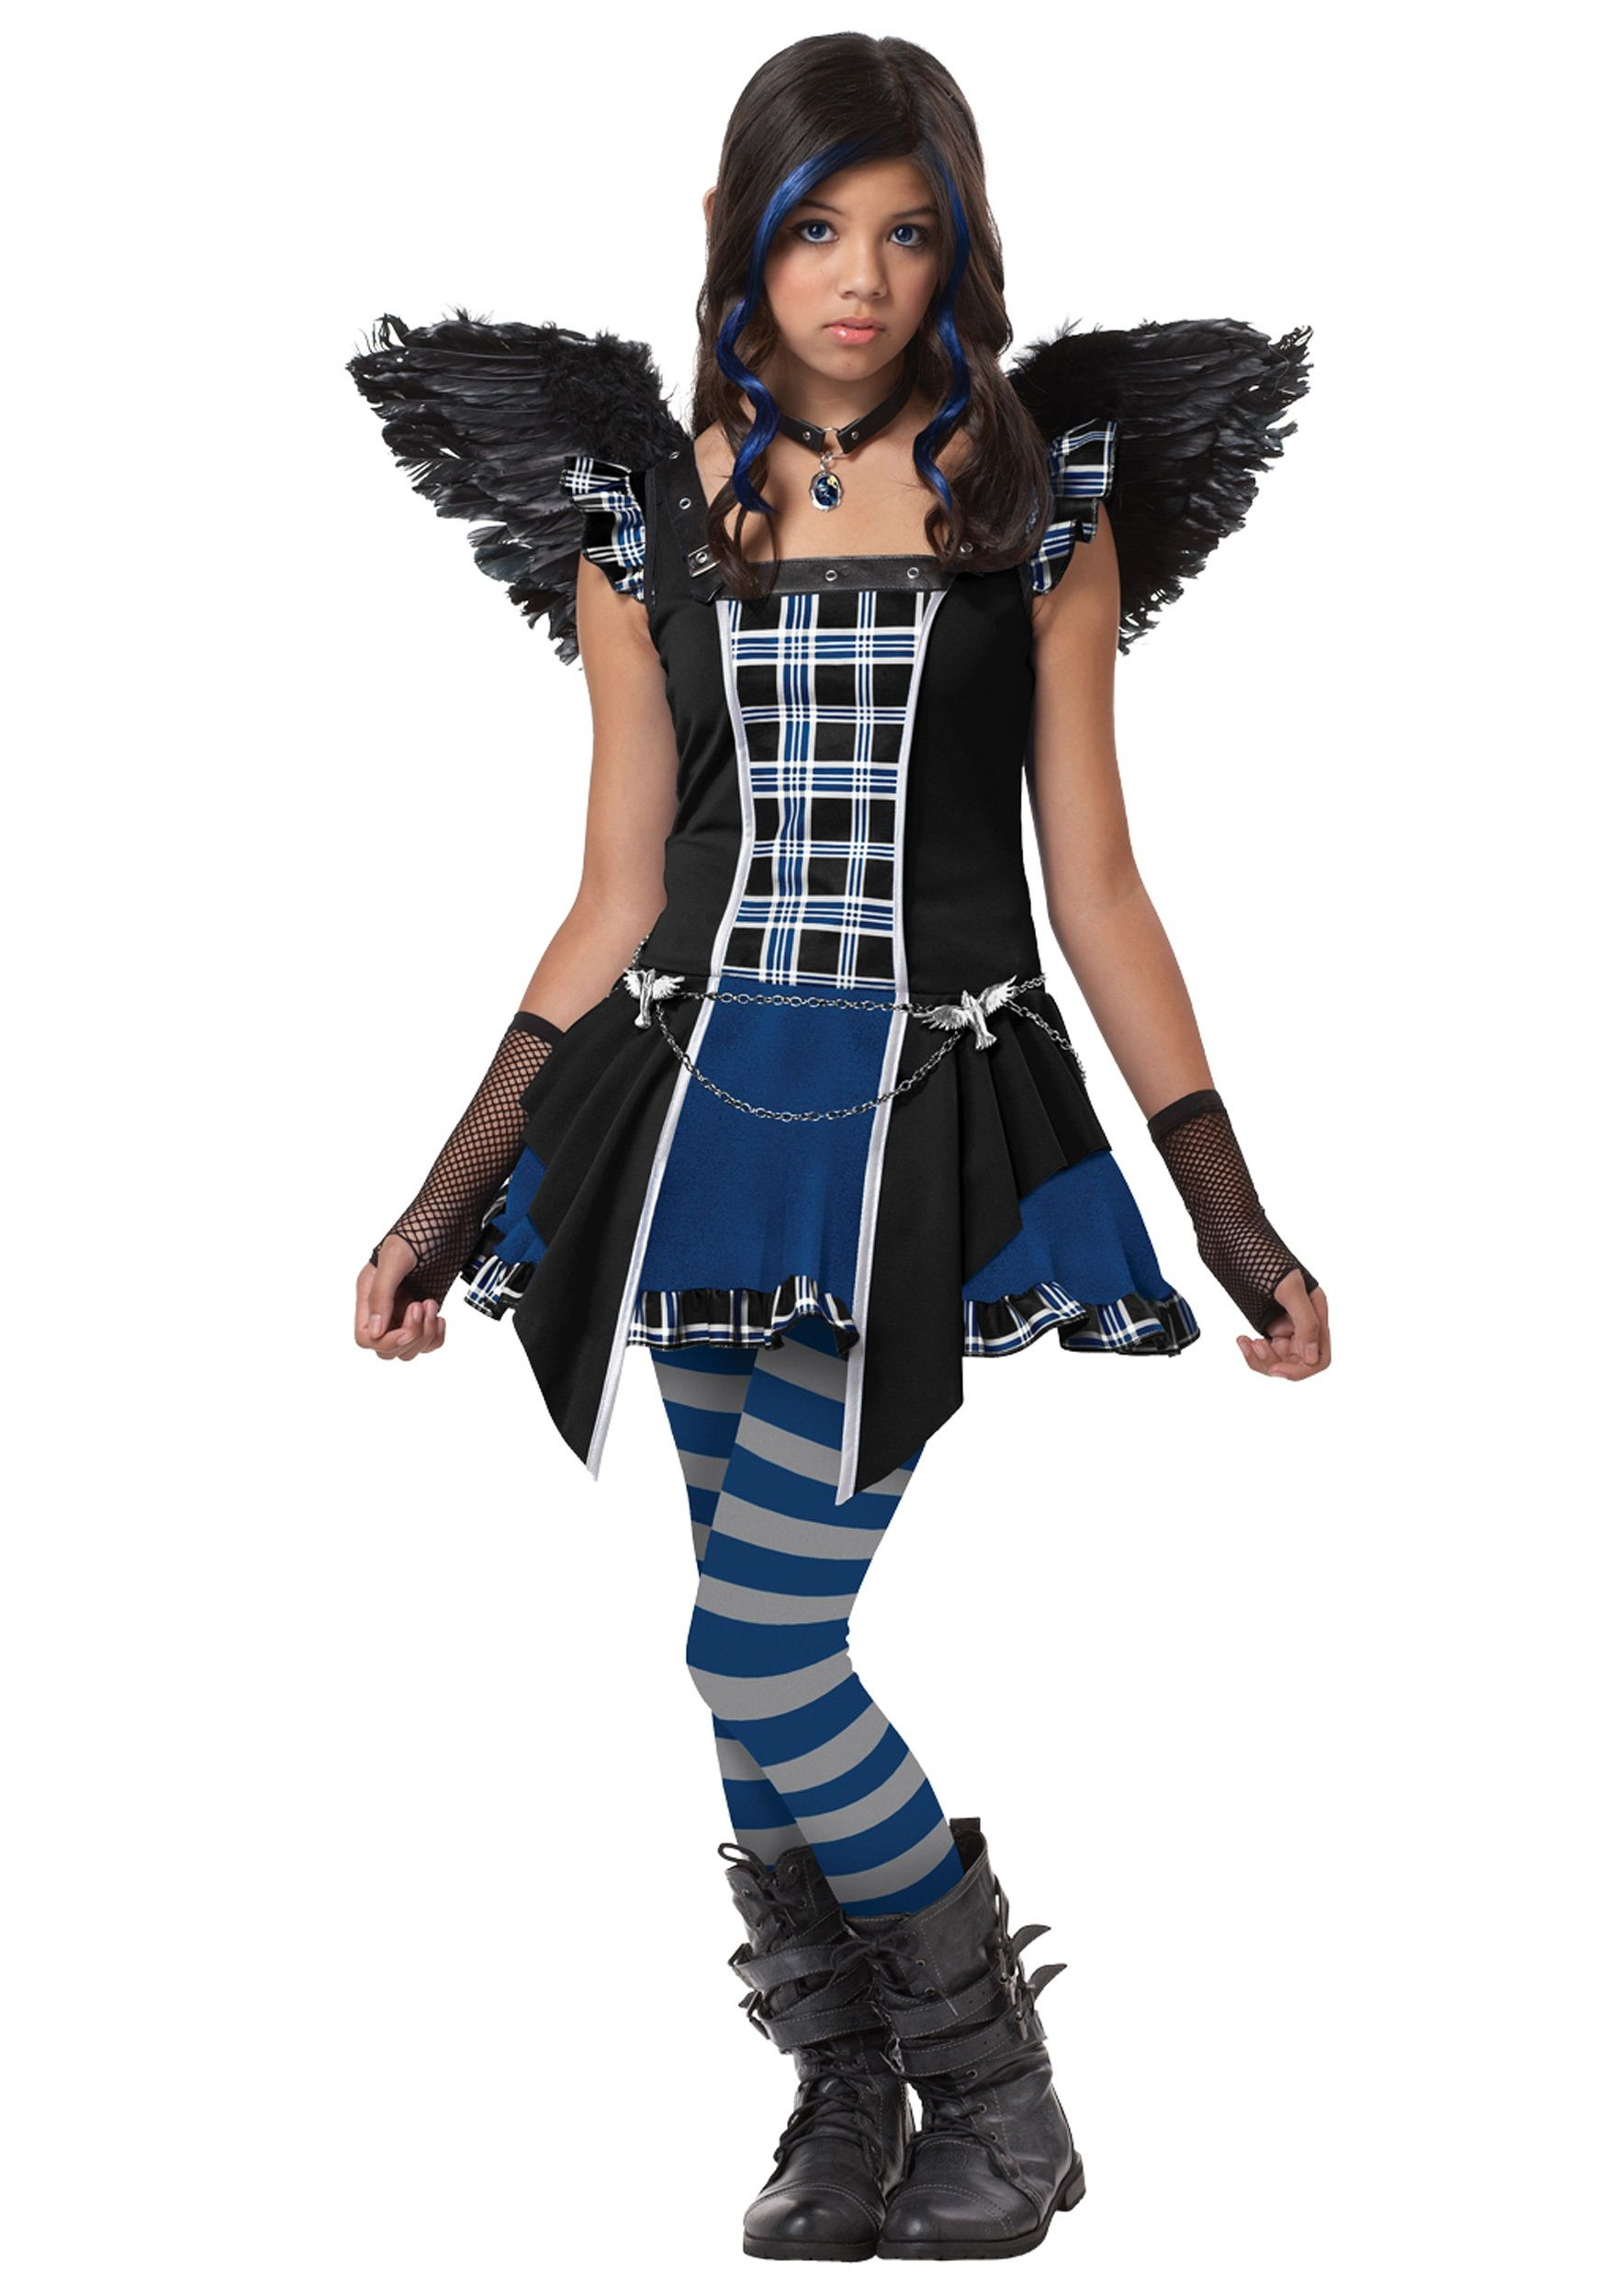 Tween costumes for girls costume ideas classic halloween for Cool halloween costumes for kids girls